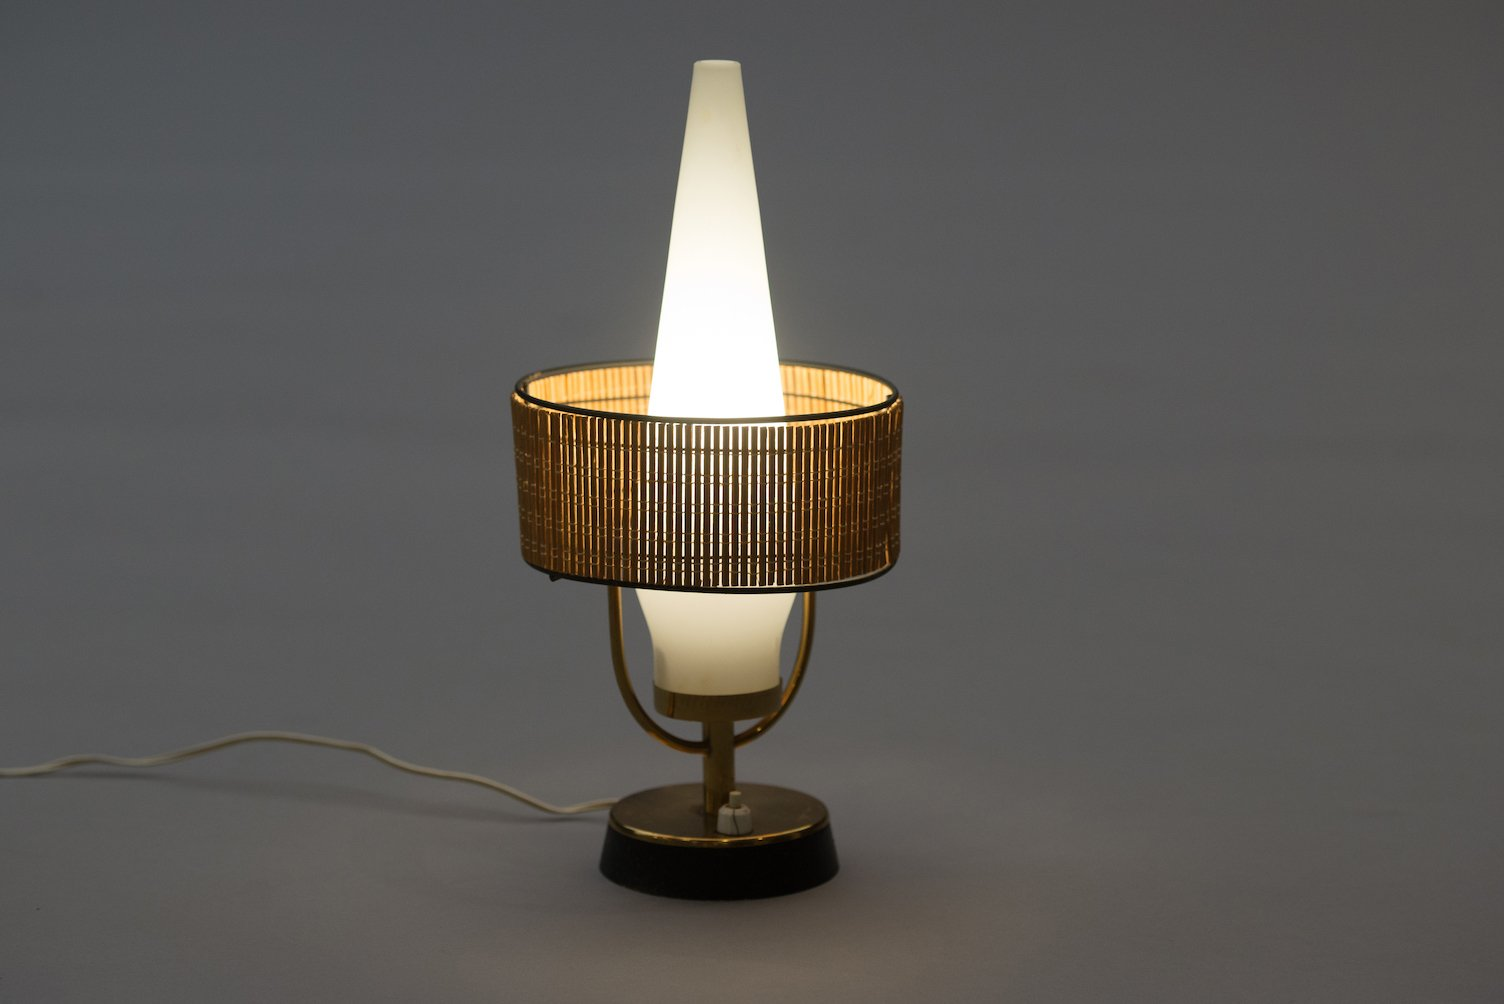 Vintage Italian Table Lamp With Frosted Glass Shade